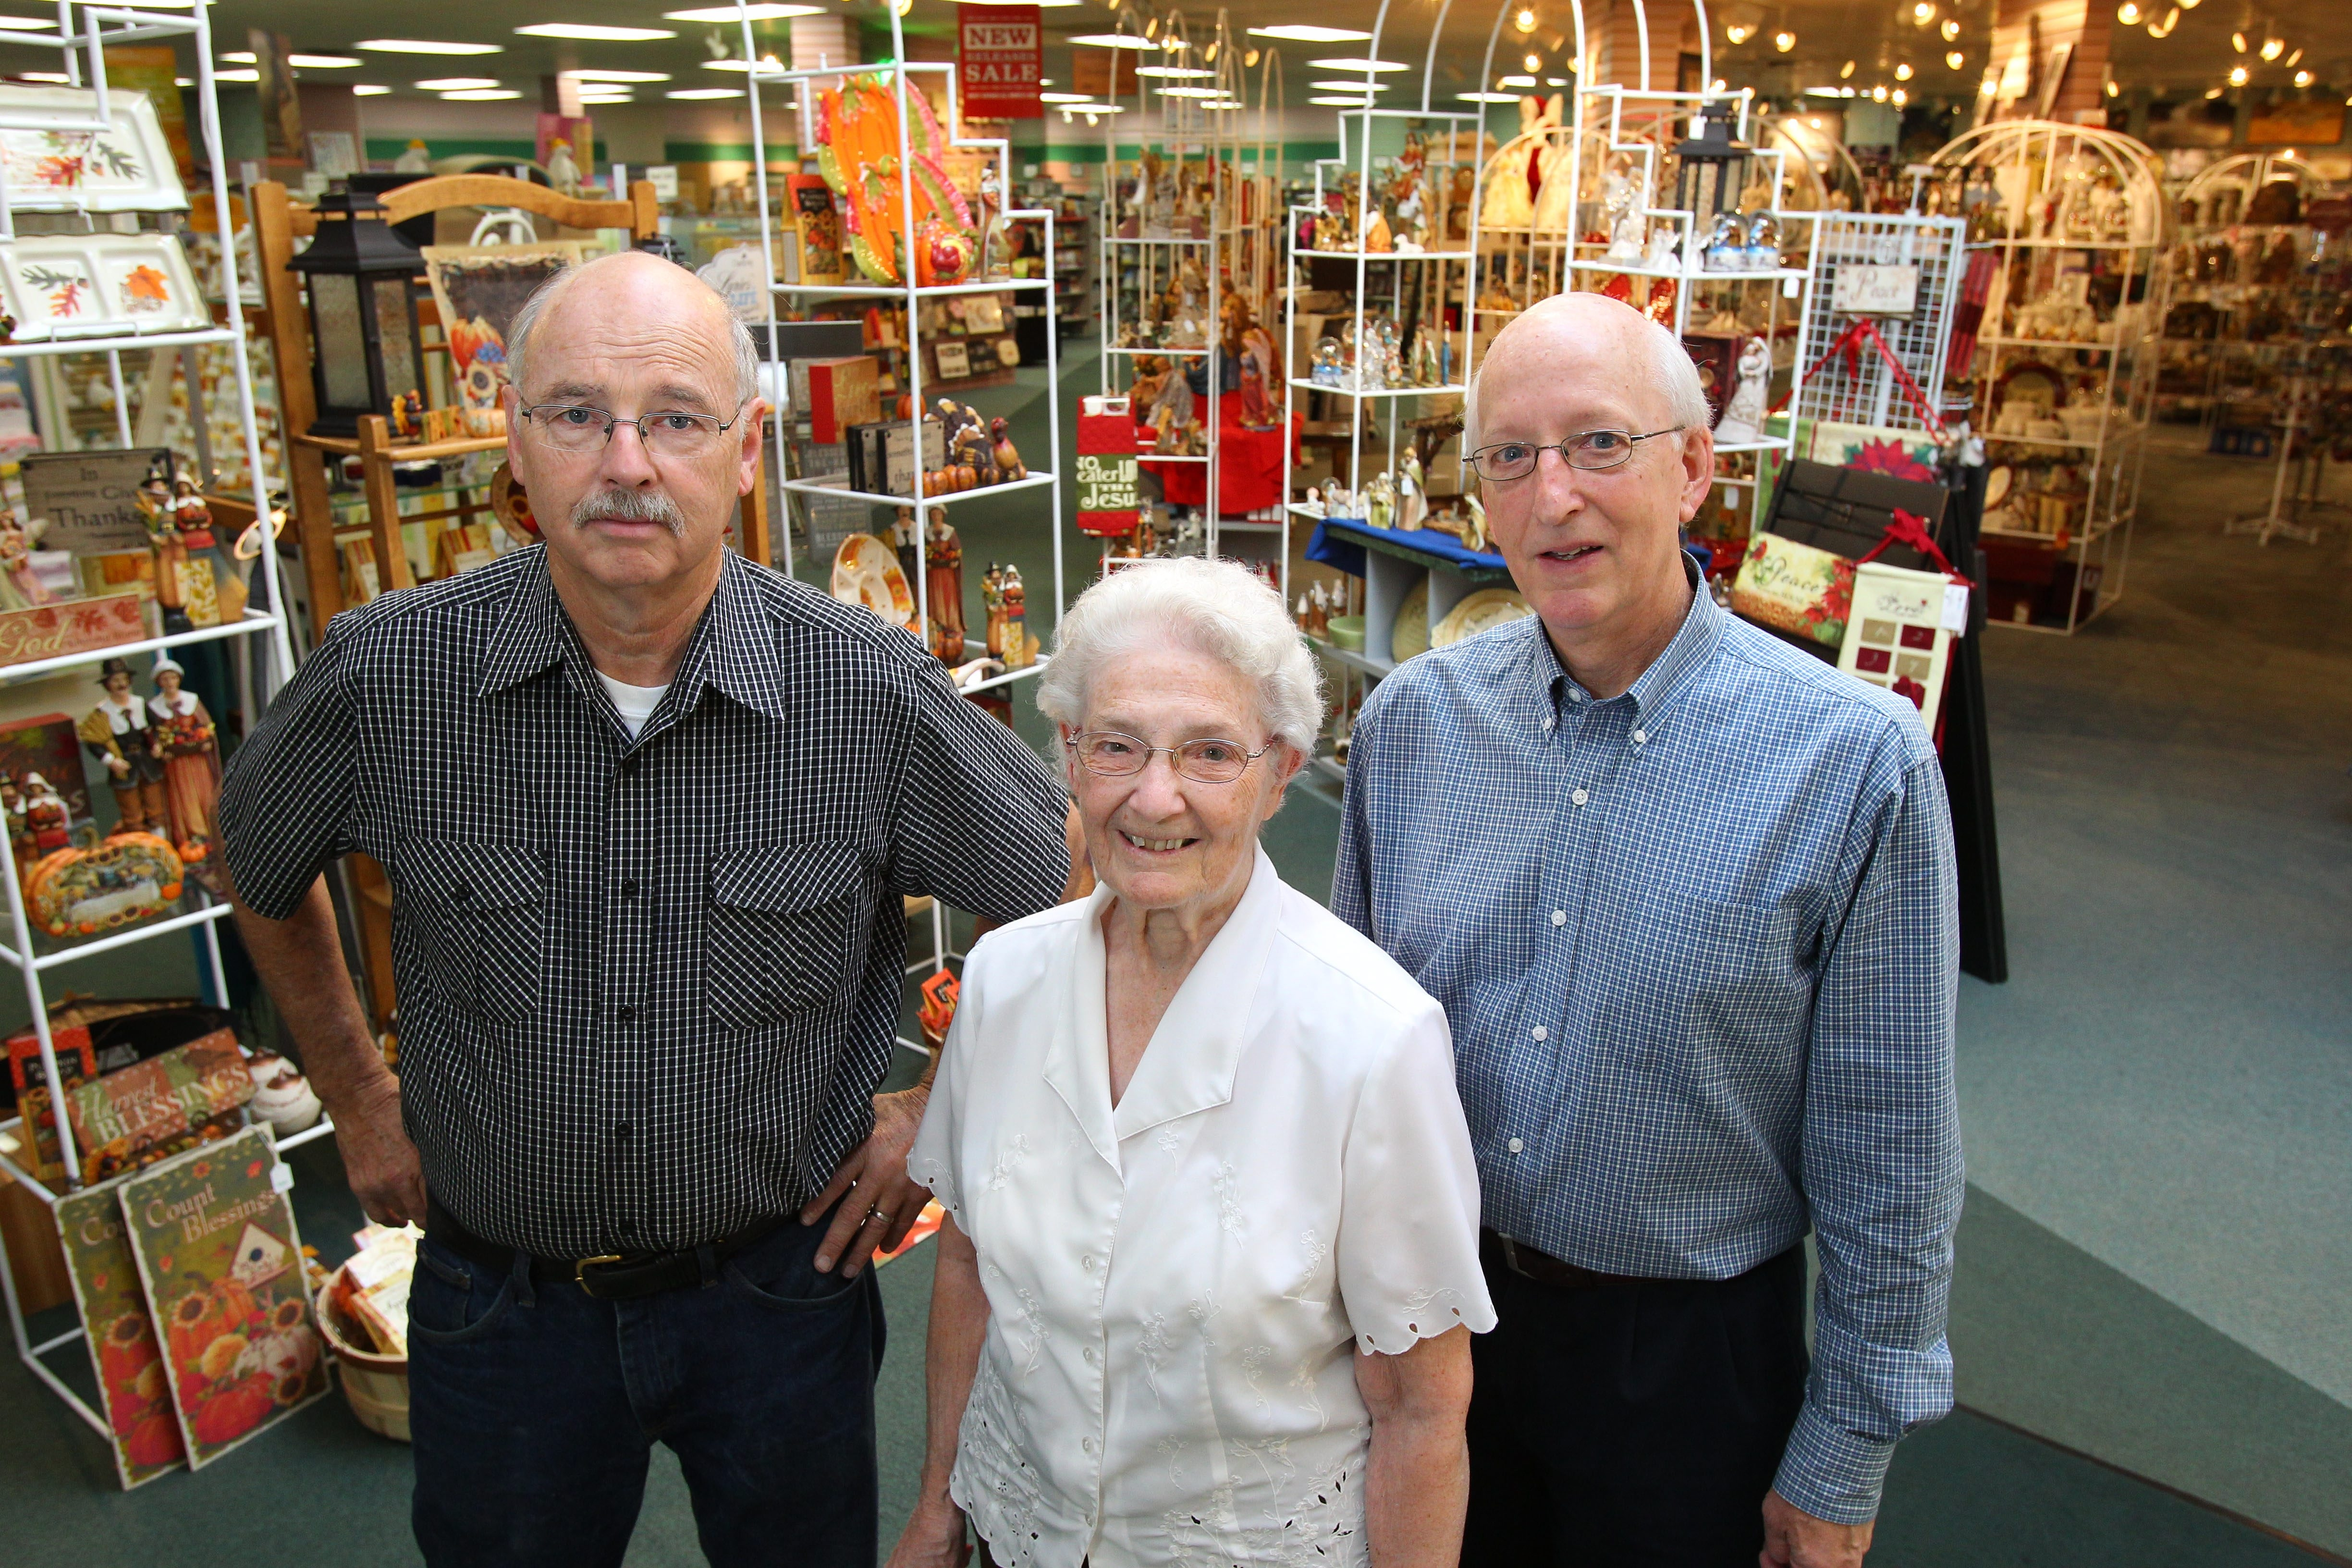 Brain trust of Bender's Parable Christian Store, Clarence – from left, Vice President Ray Slingerland, founder Jean Bender-Mast, President Arden Bender – adapts to changing times with enduring values.